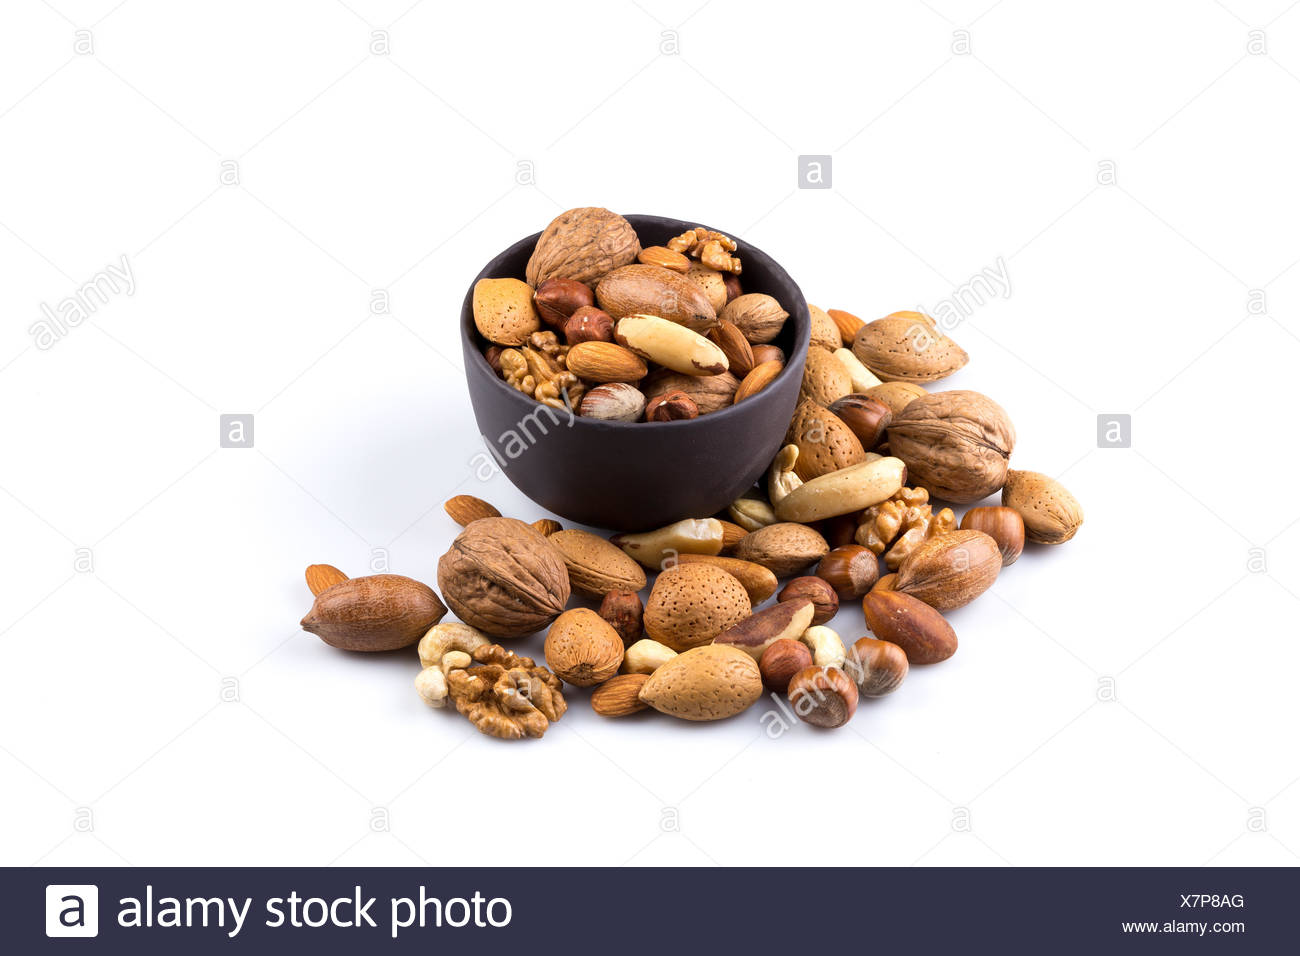 Nuts mix in bowl - Stock Image